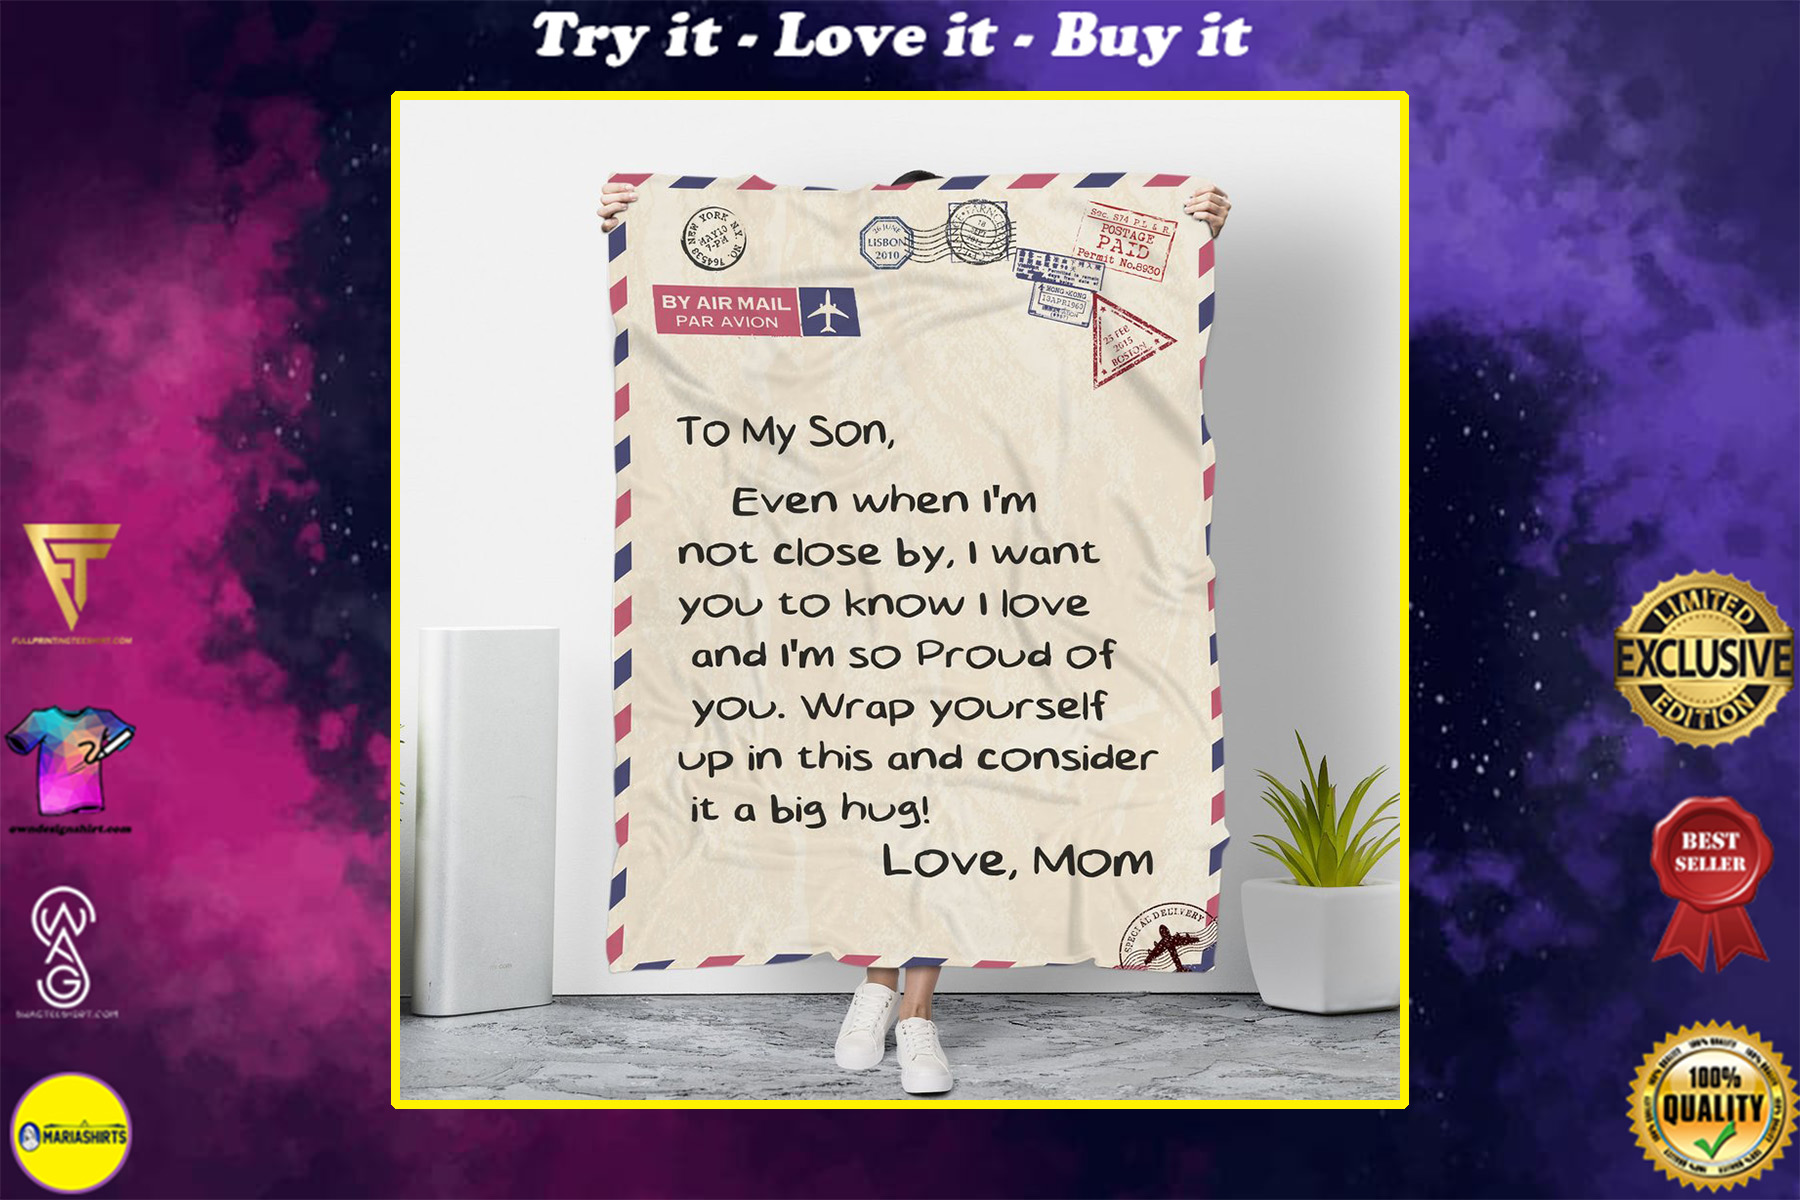 by air mail to my son wrap yourself up in this and consider it a big hug love mom blanket